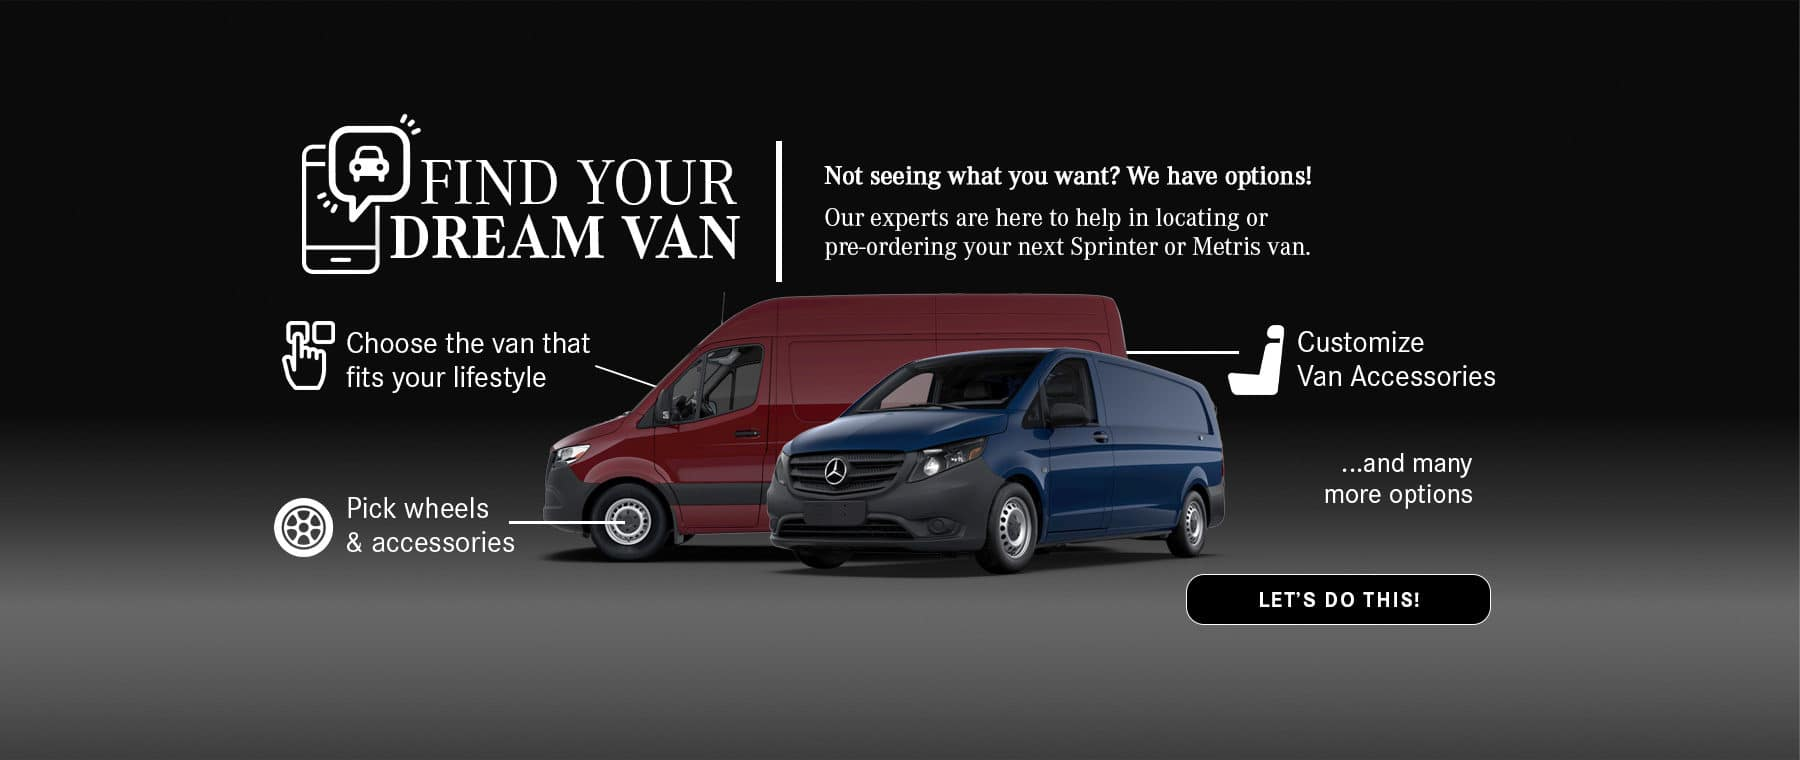 Find Your Dream Van. Our experts are here to help in locating or pre-ordering your next sprinter or metris van